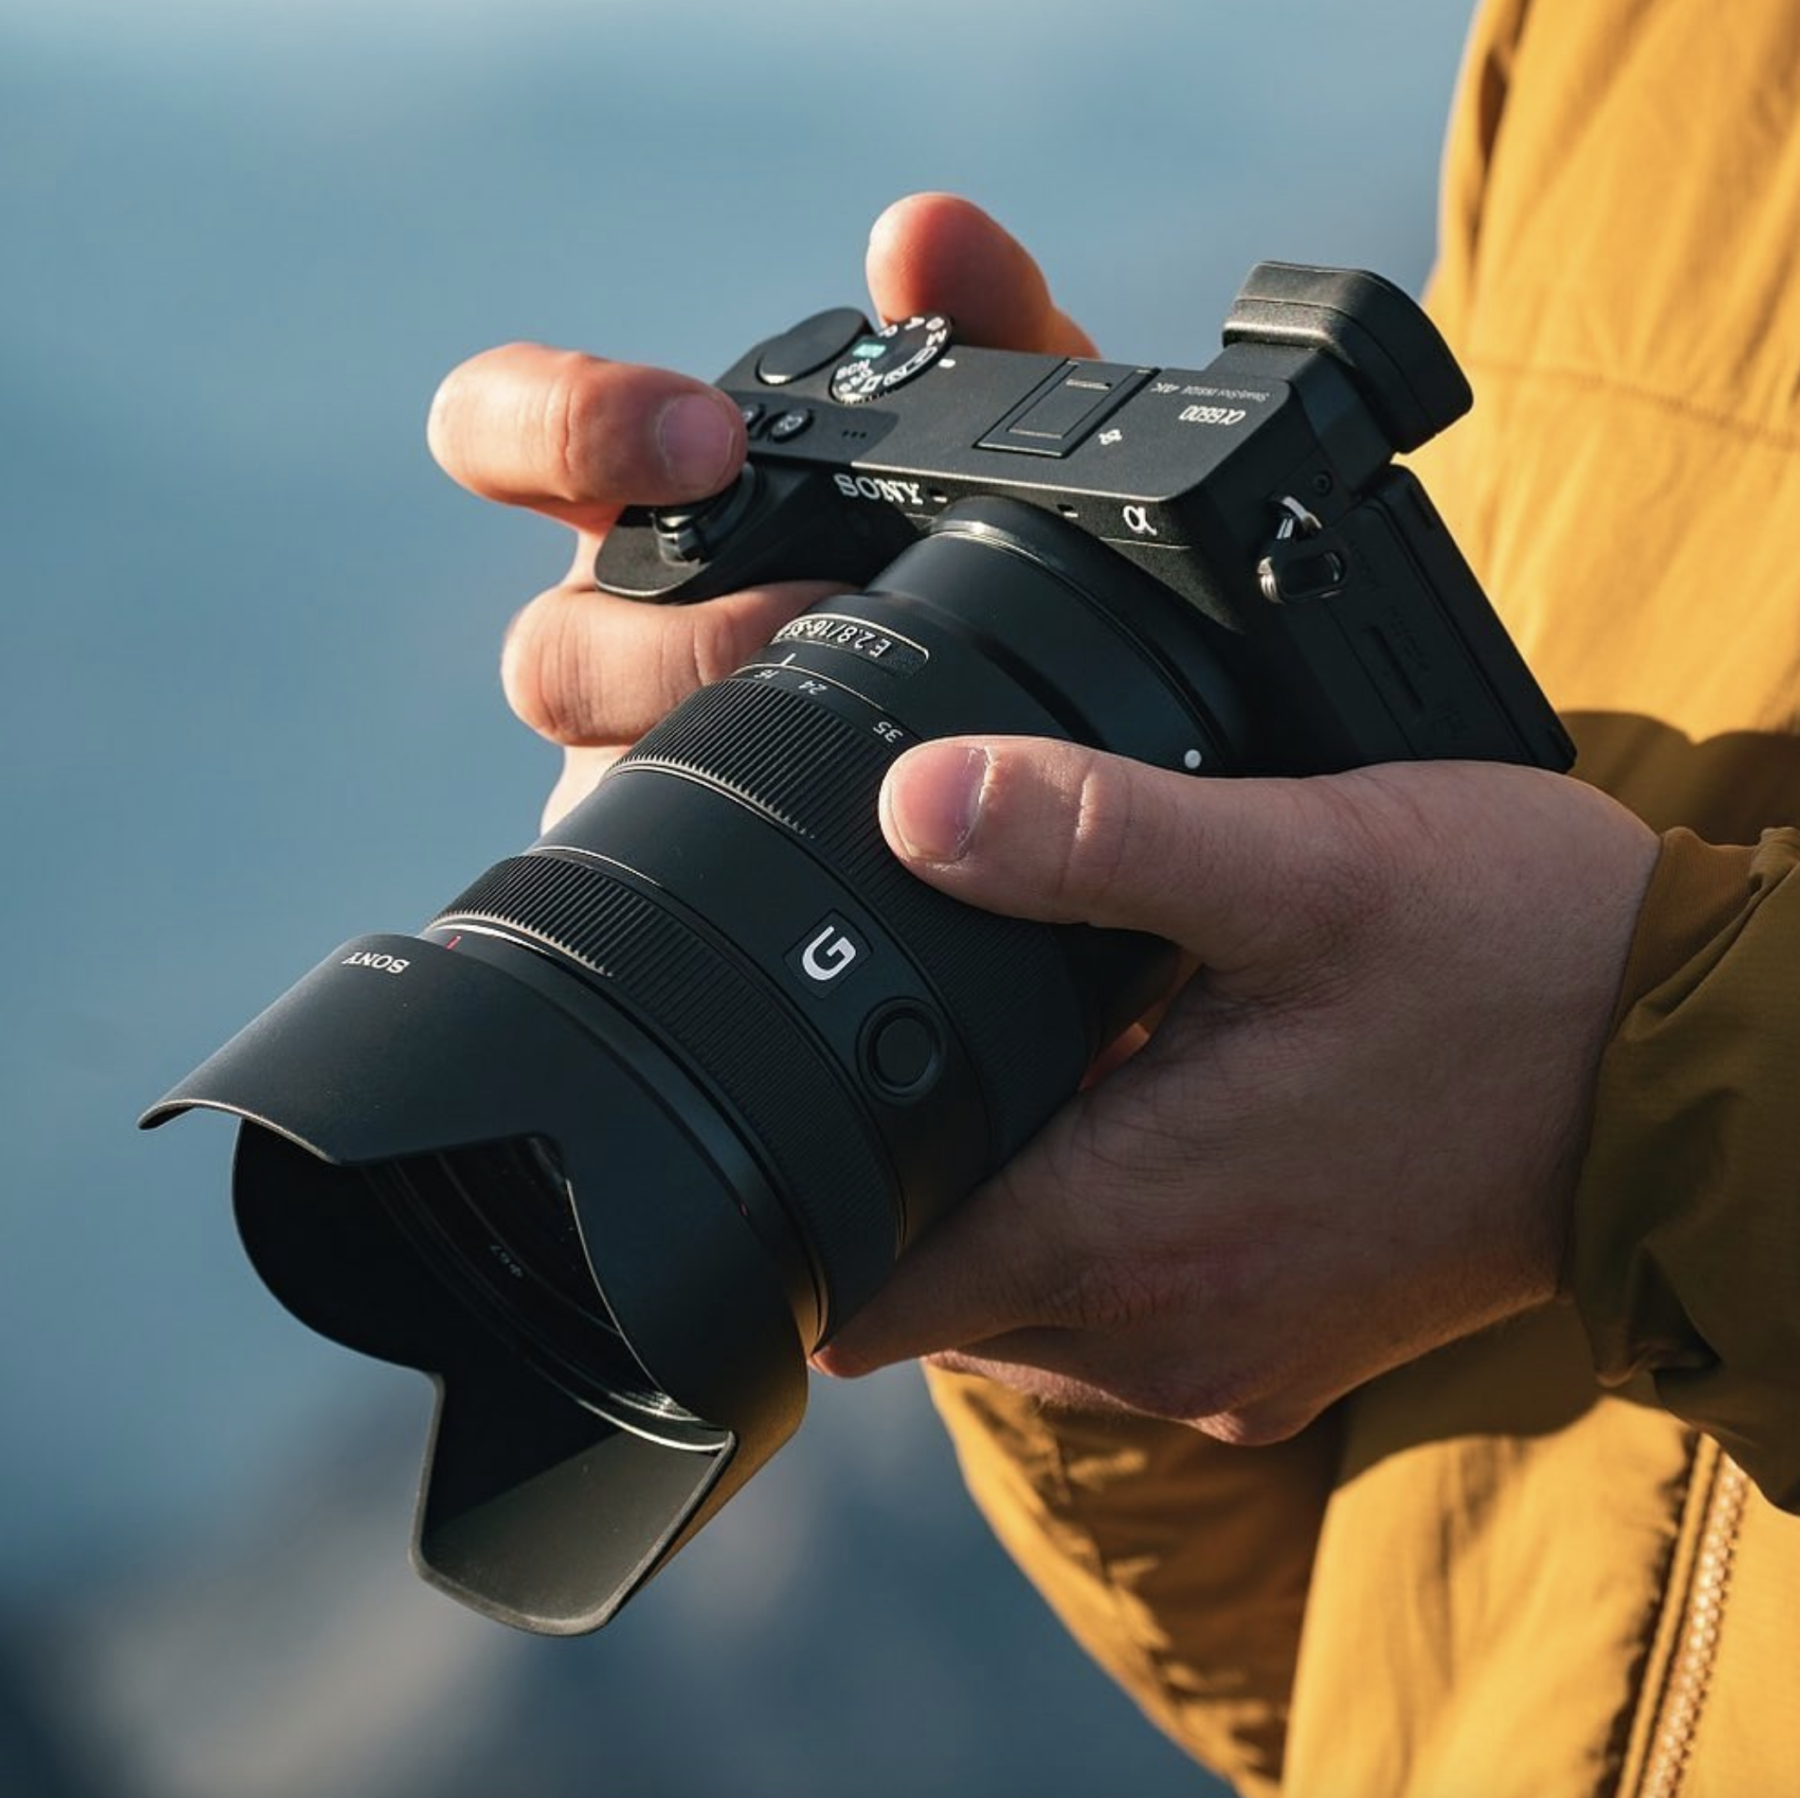 Sony A6500, photographed by Scott Kranz